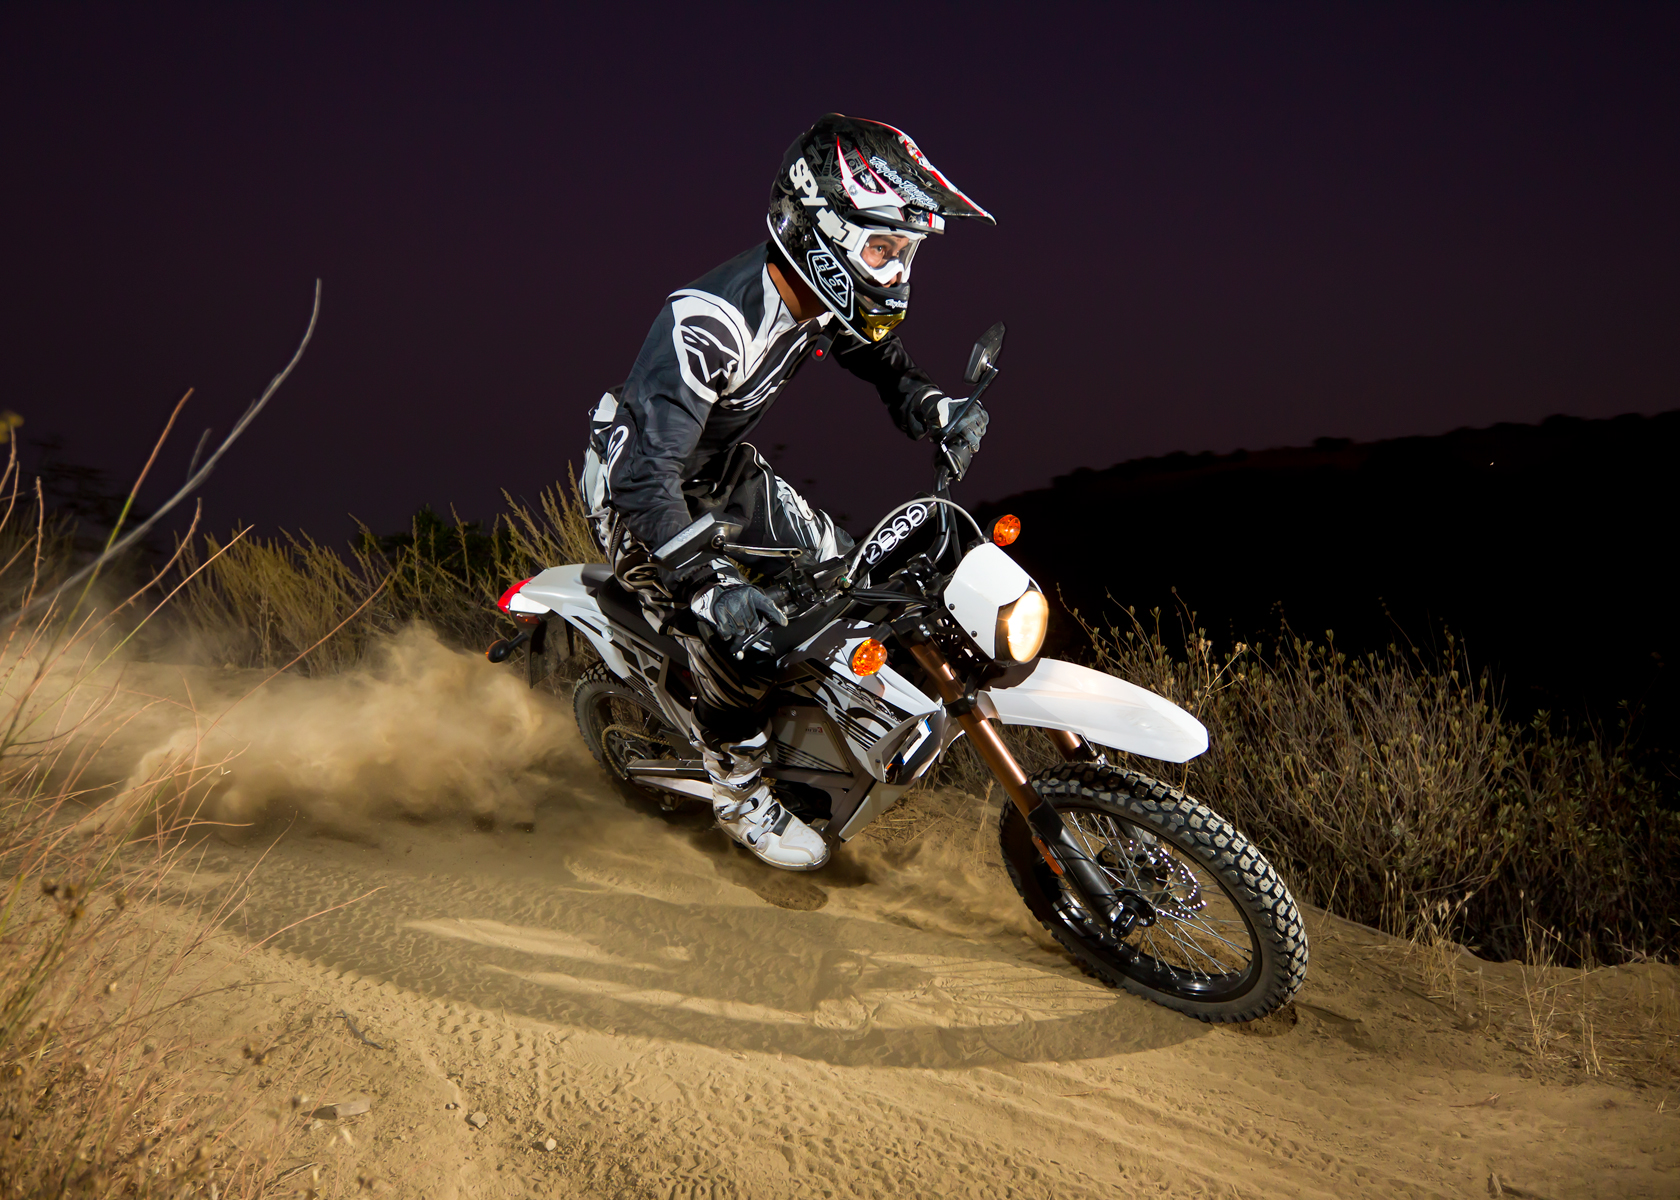 2012 Zero X Electric Motorcycle: Dirt Track